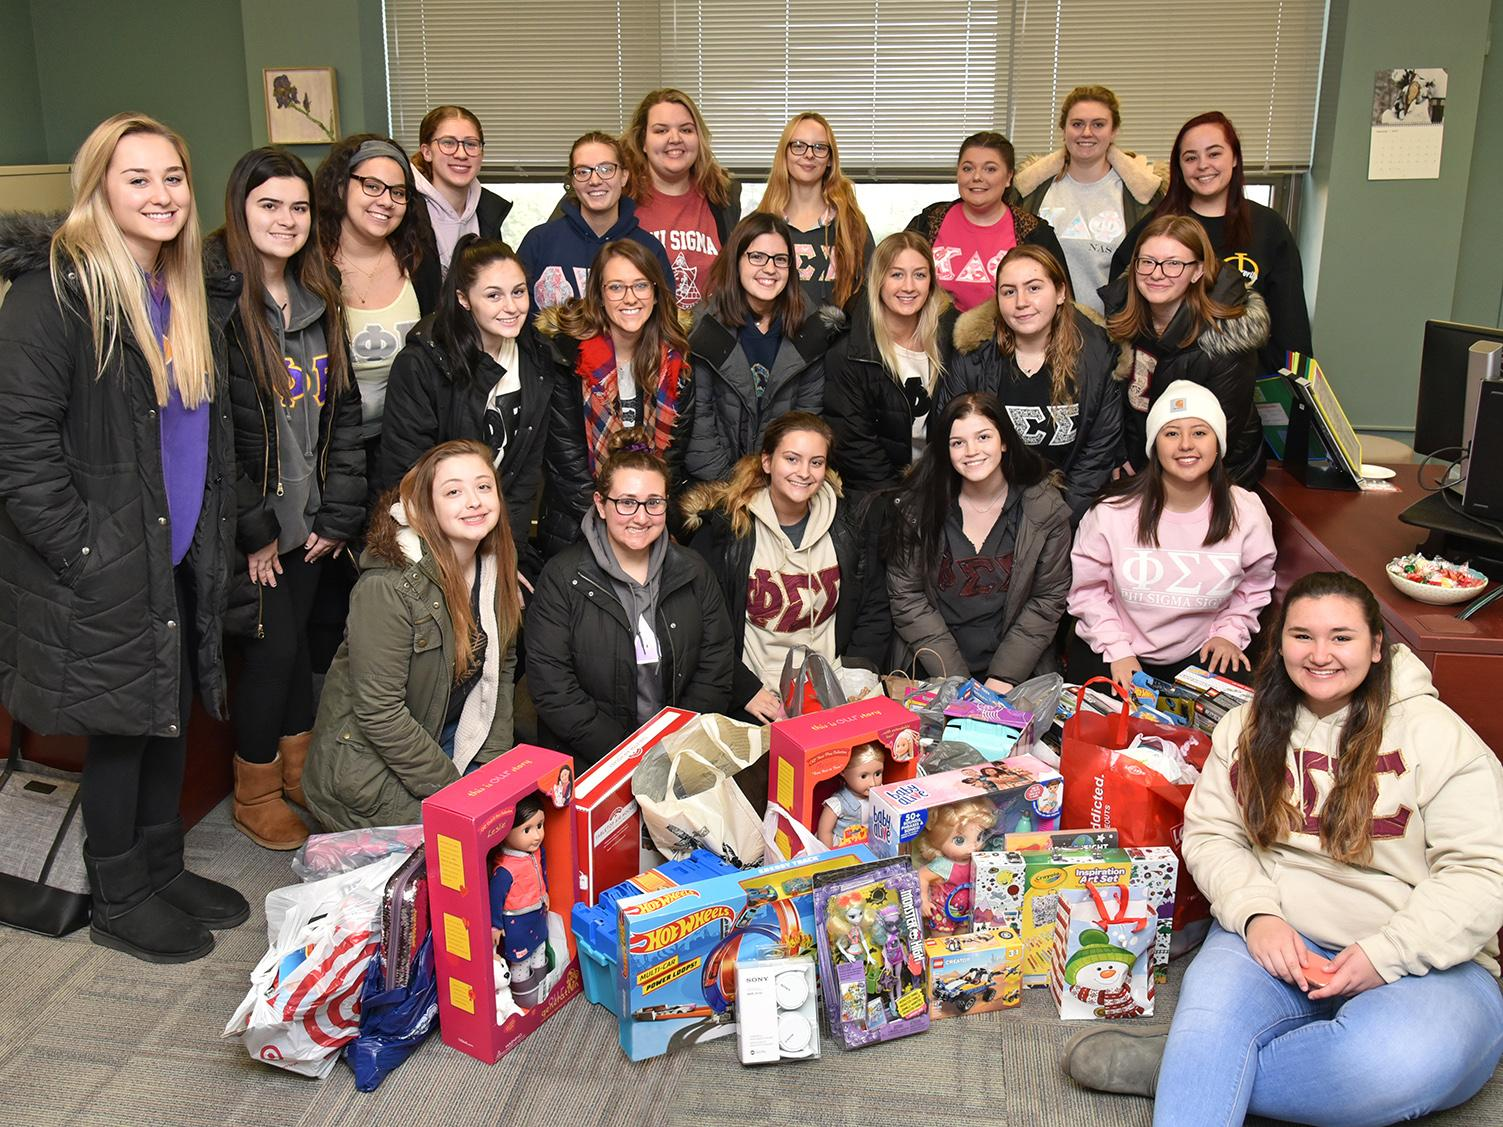 Sororities collected gifts and canned goods for the community